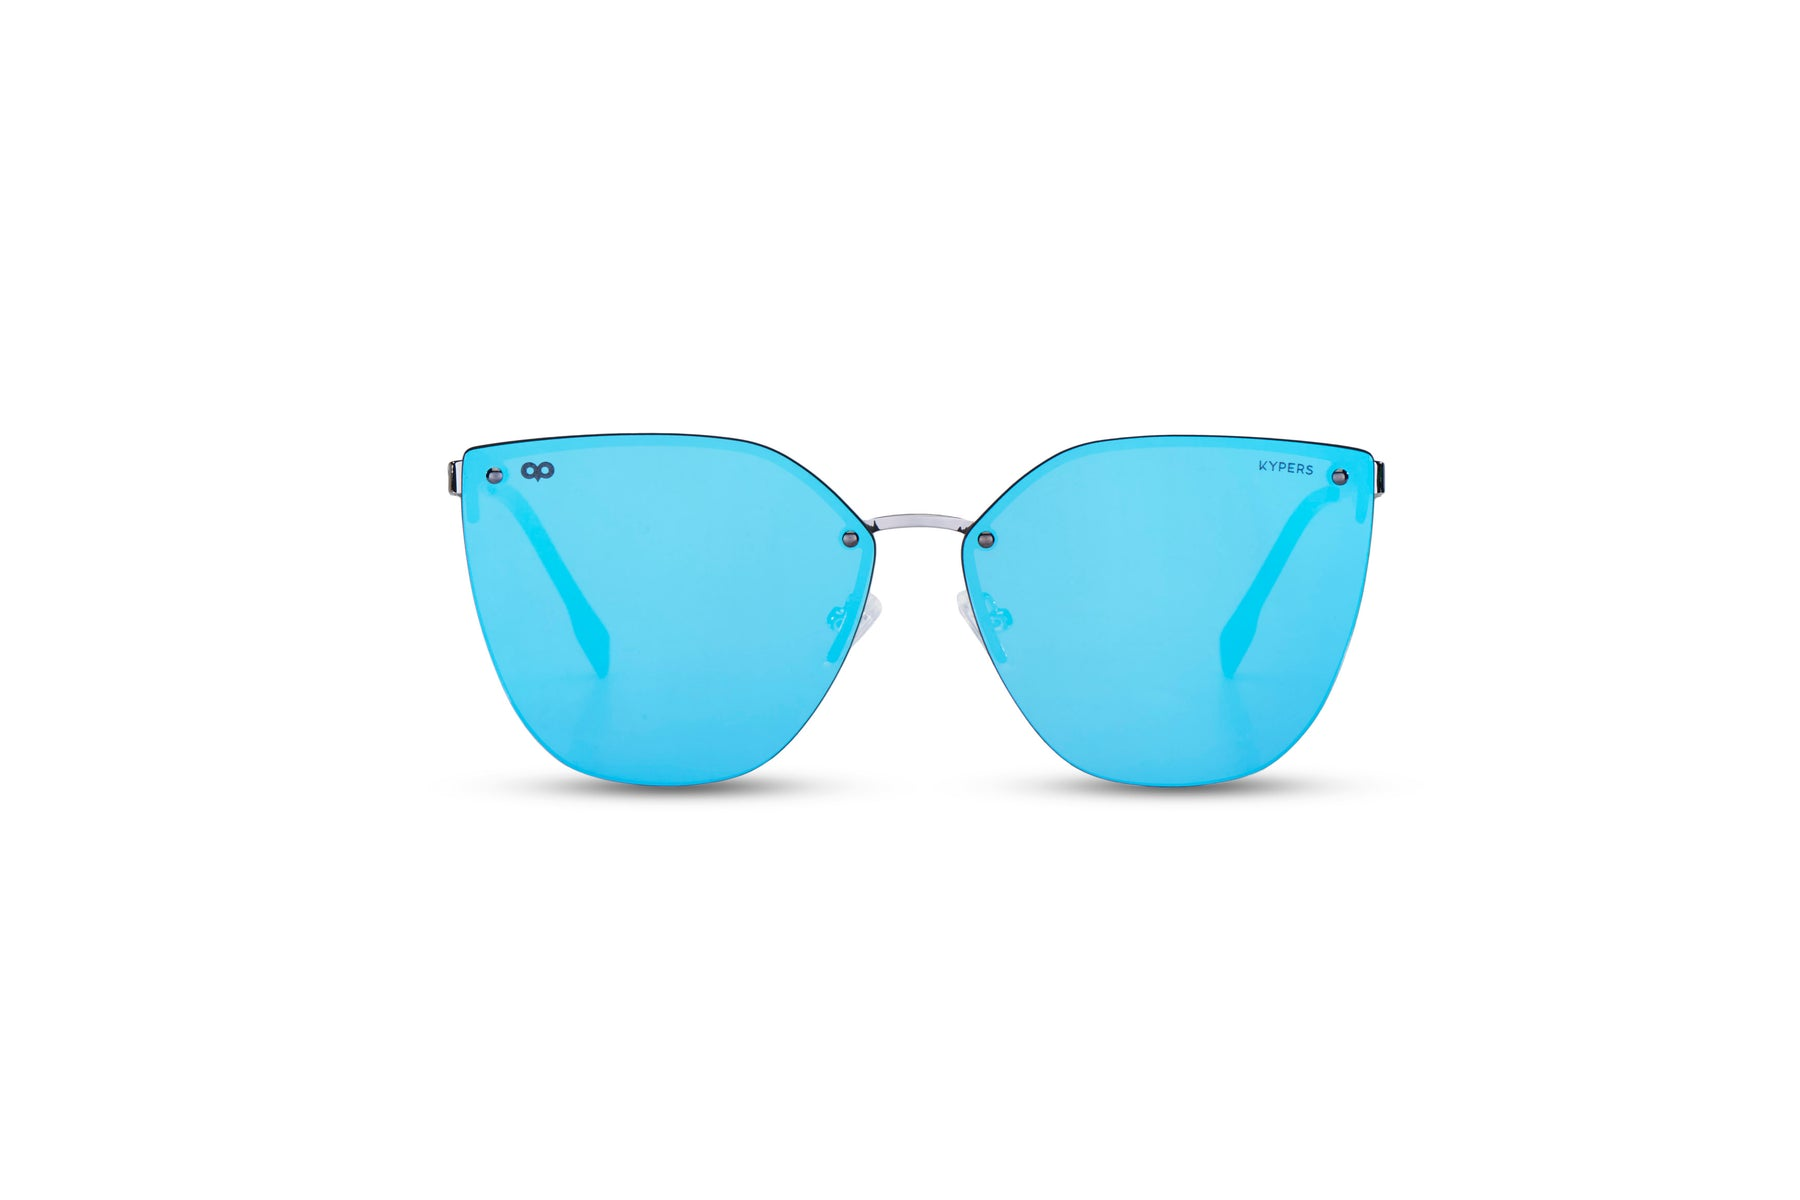 KYPERS sunglasses model GUANTER GU001.S with silver frame and blue lens